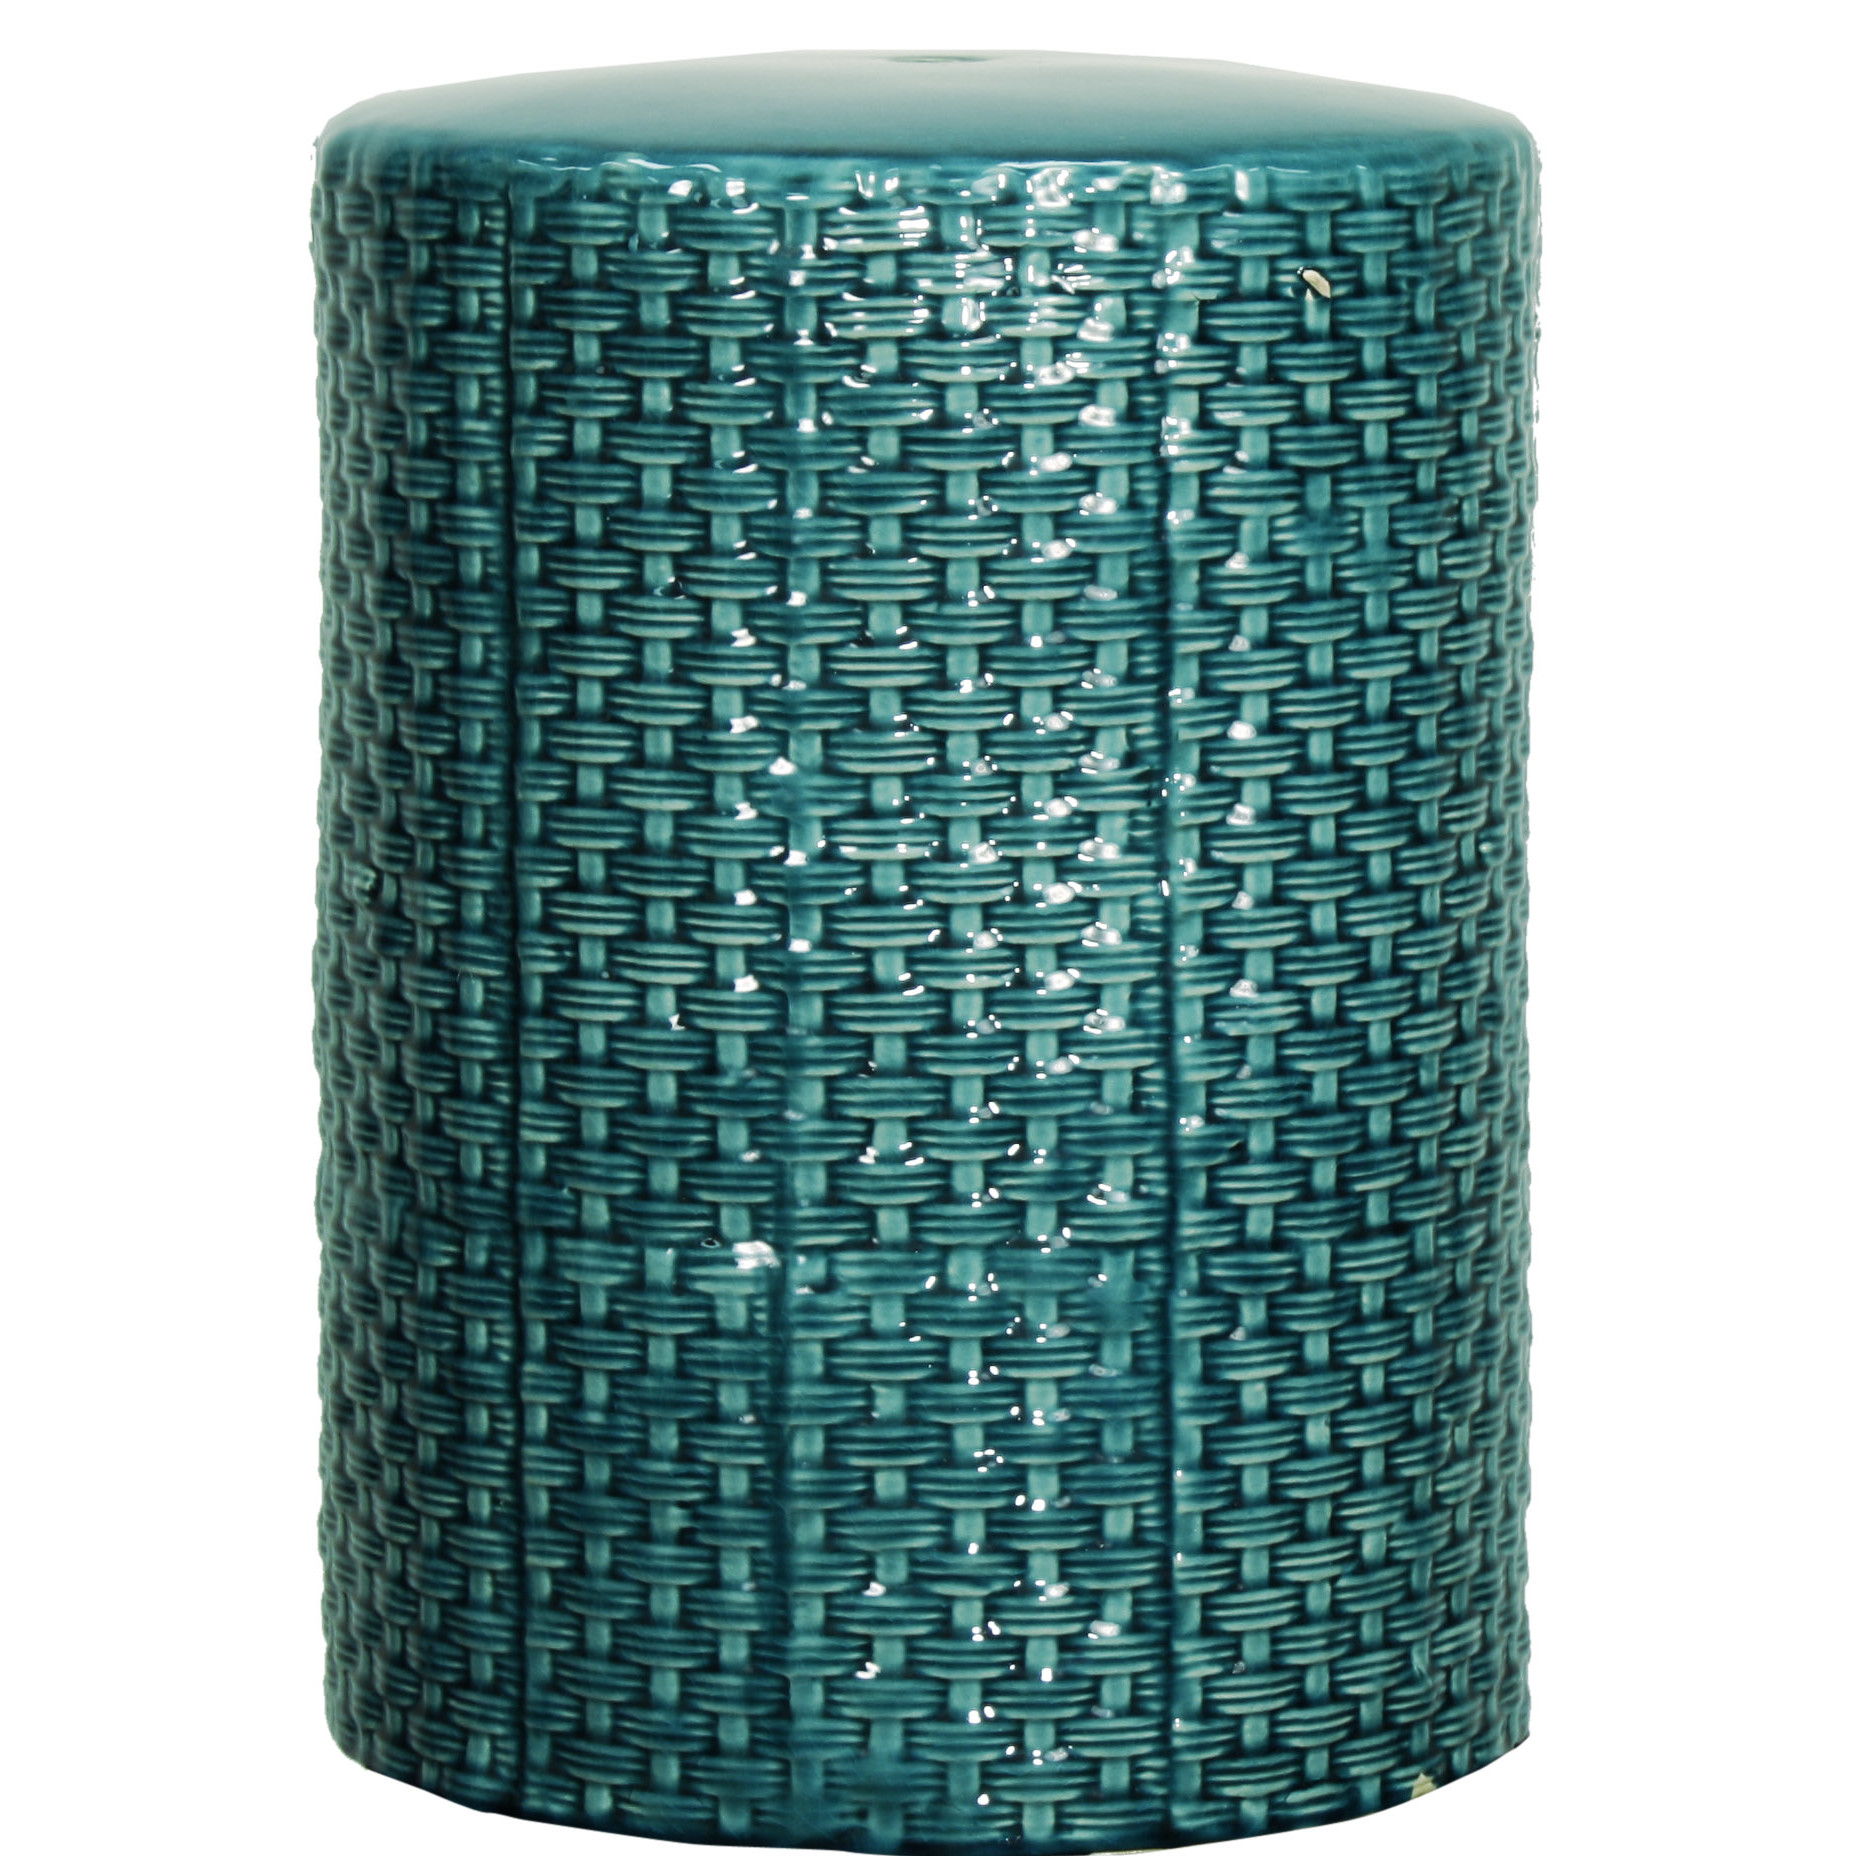 Beautiful garden stool for decorating interior ideas with ceramic garden stool